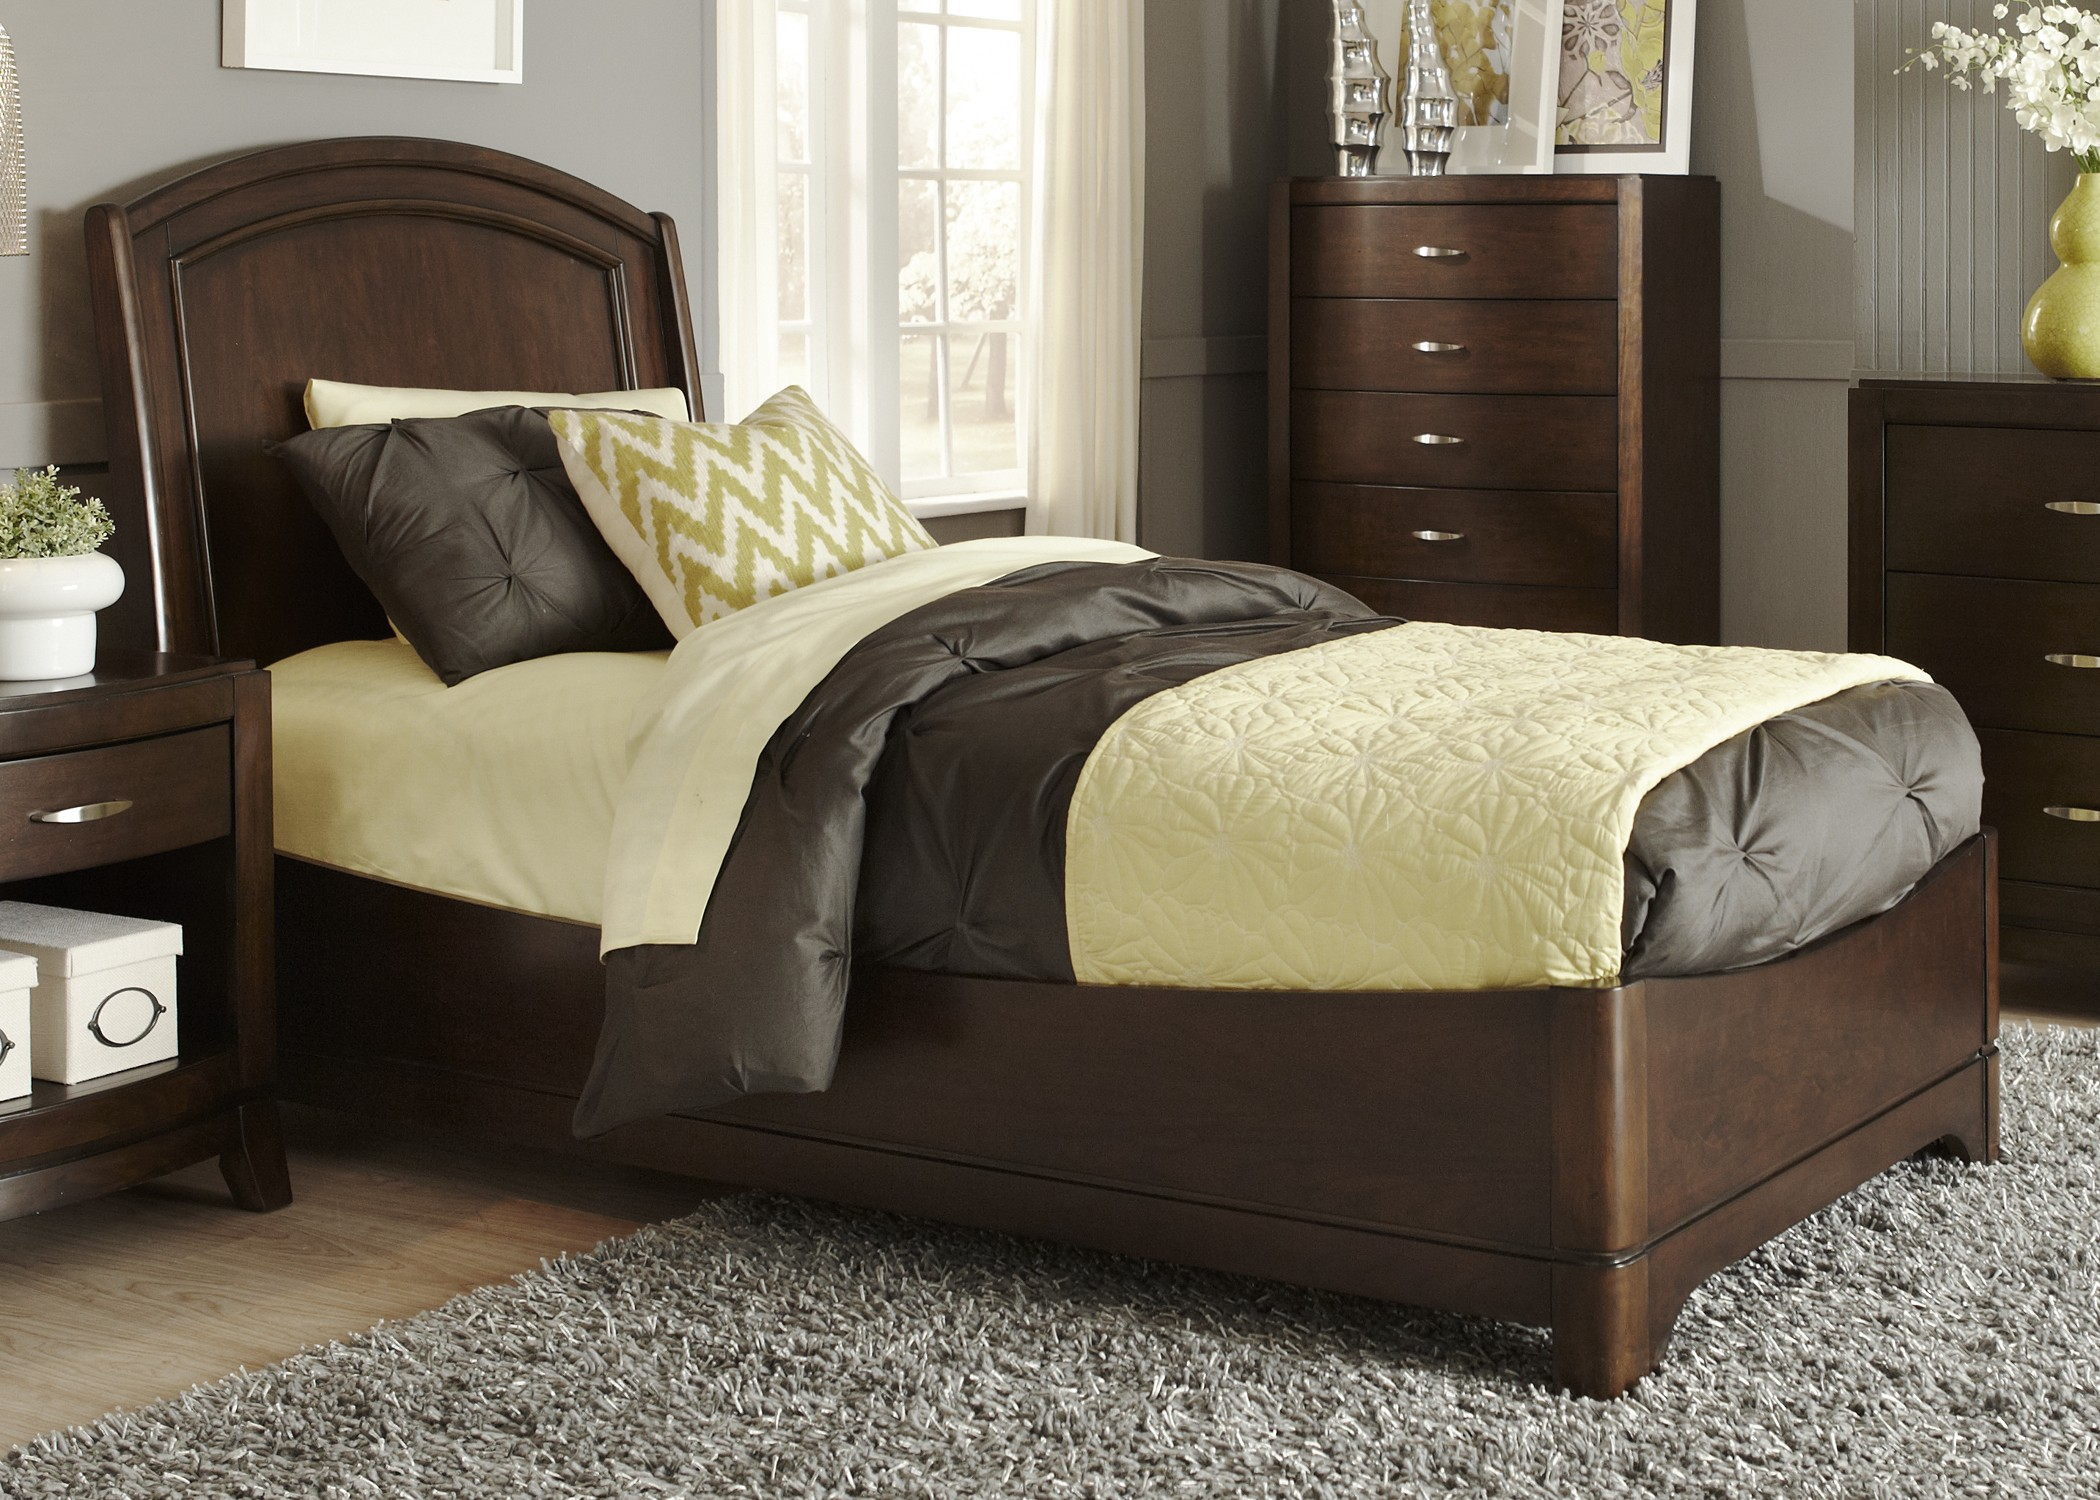 avalon truffle youth platform bedroom set from liberty 505 ybr tpl